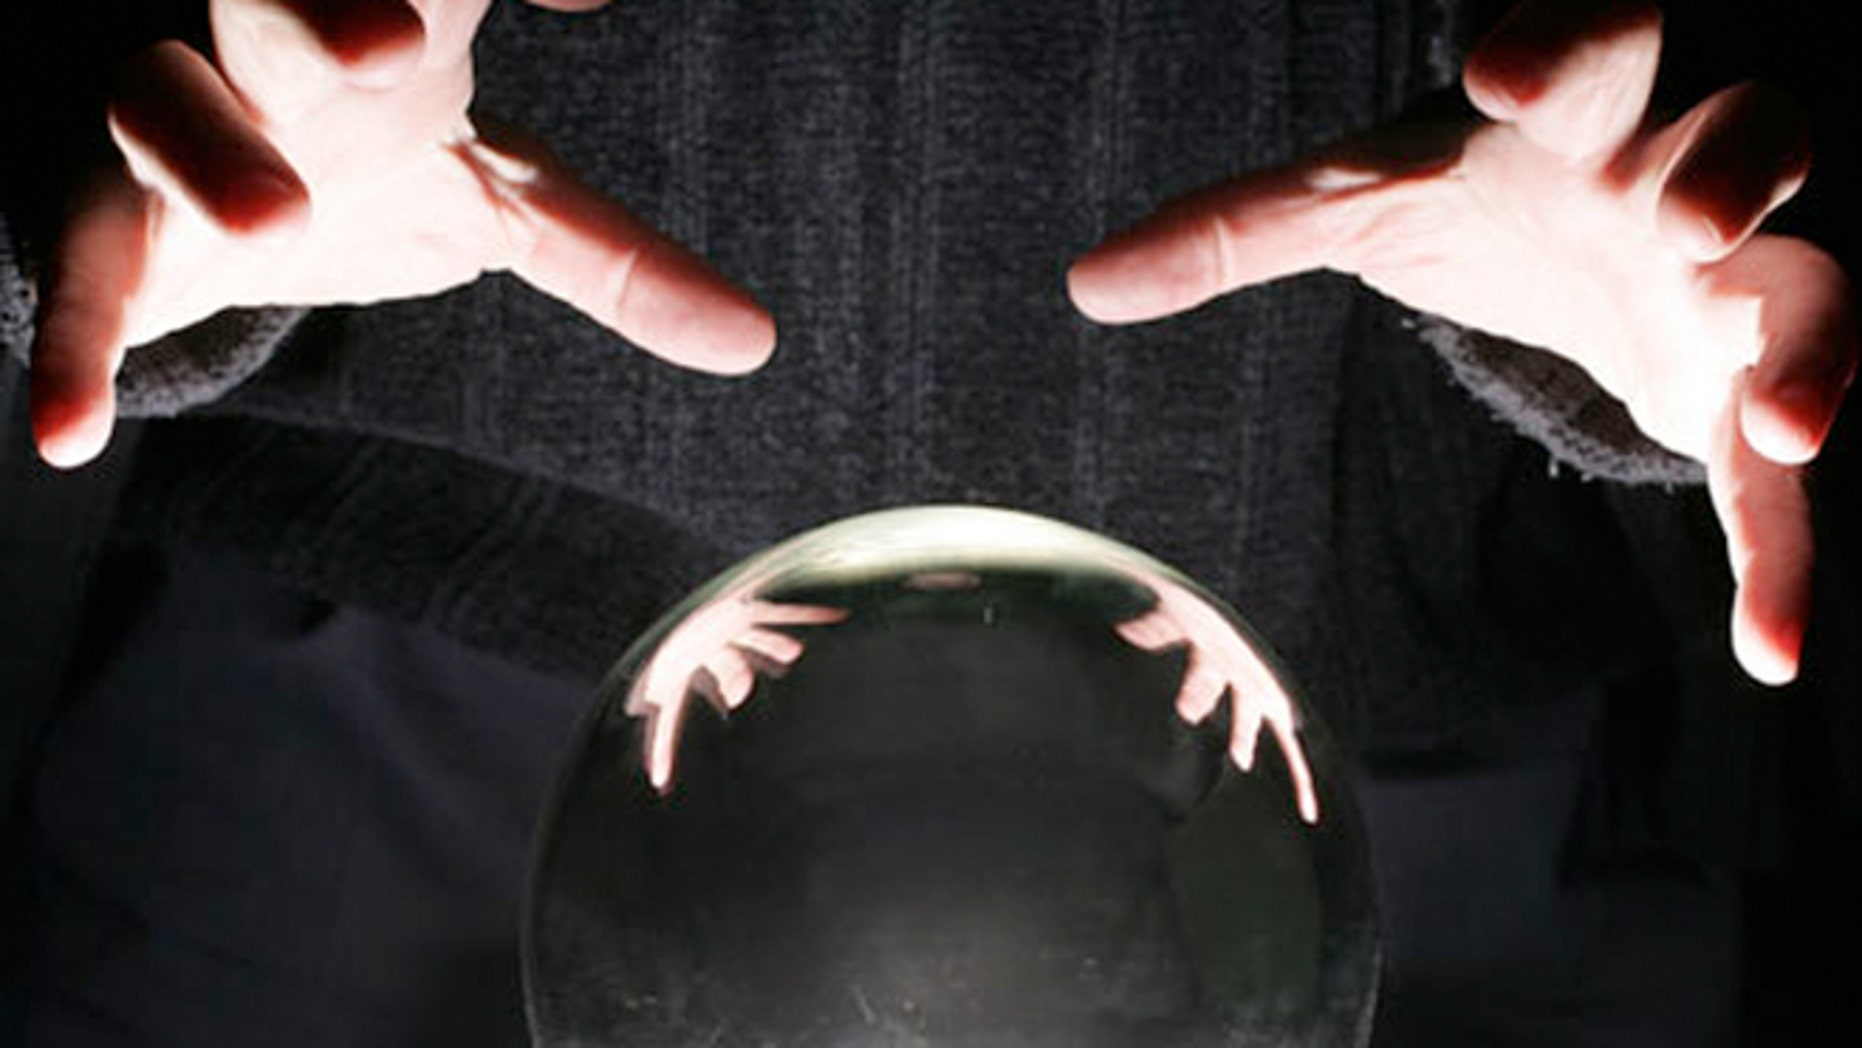 Confessions of a psychic | Fox News